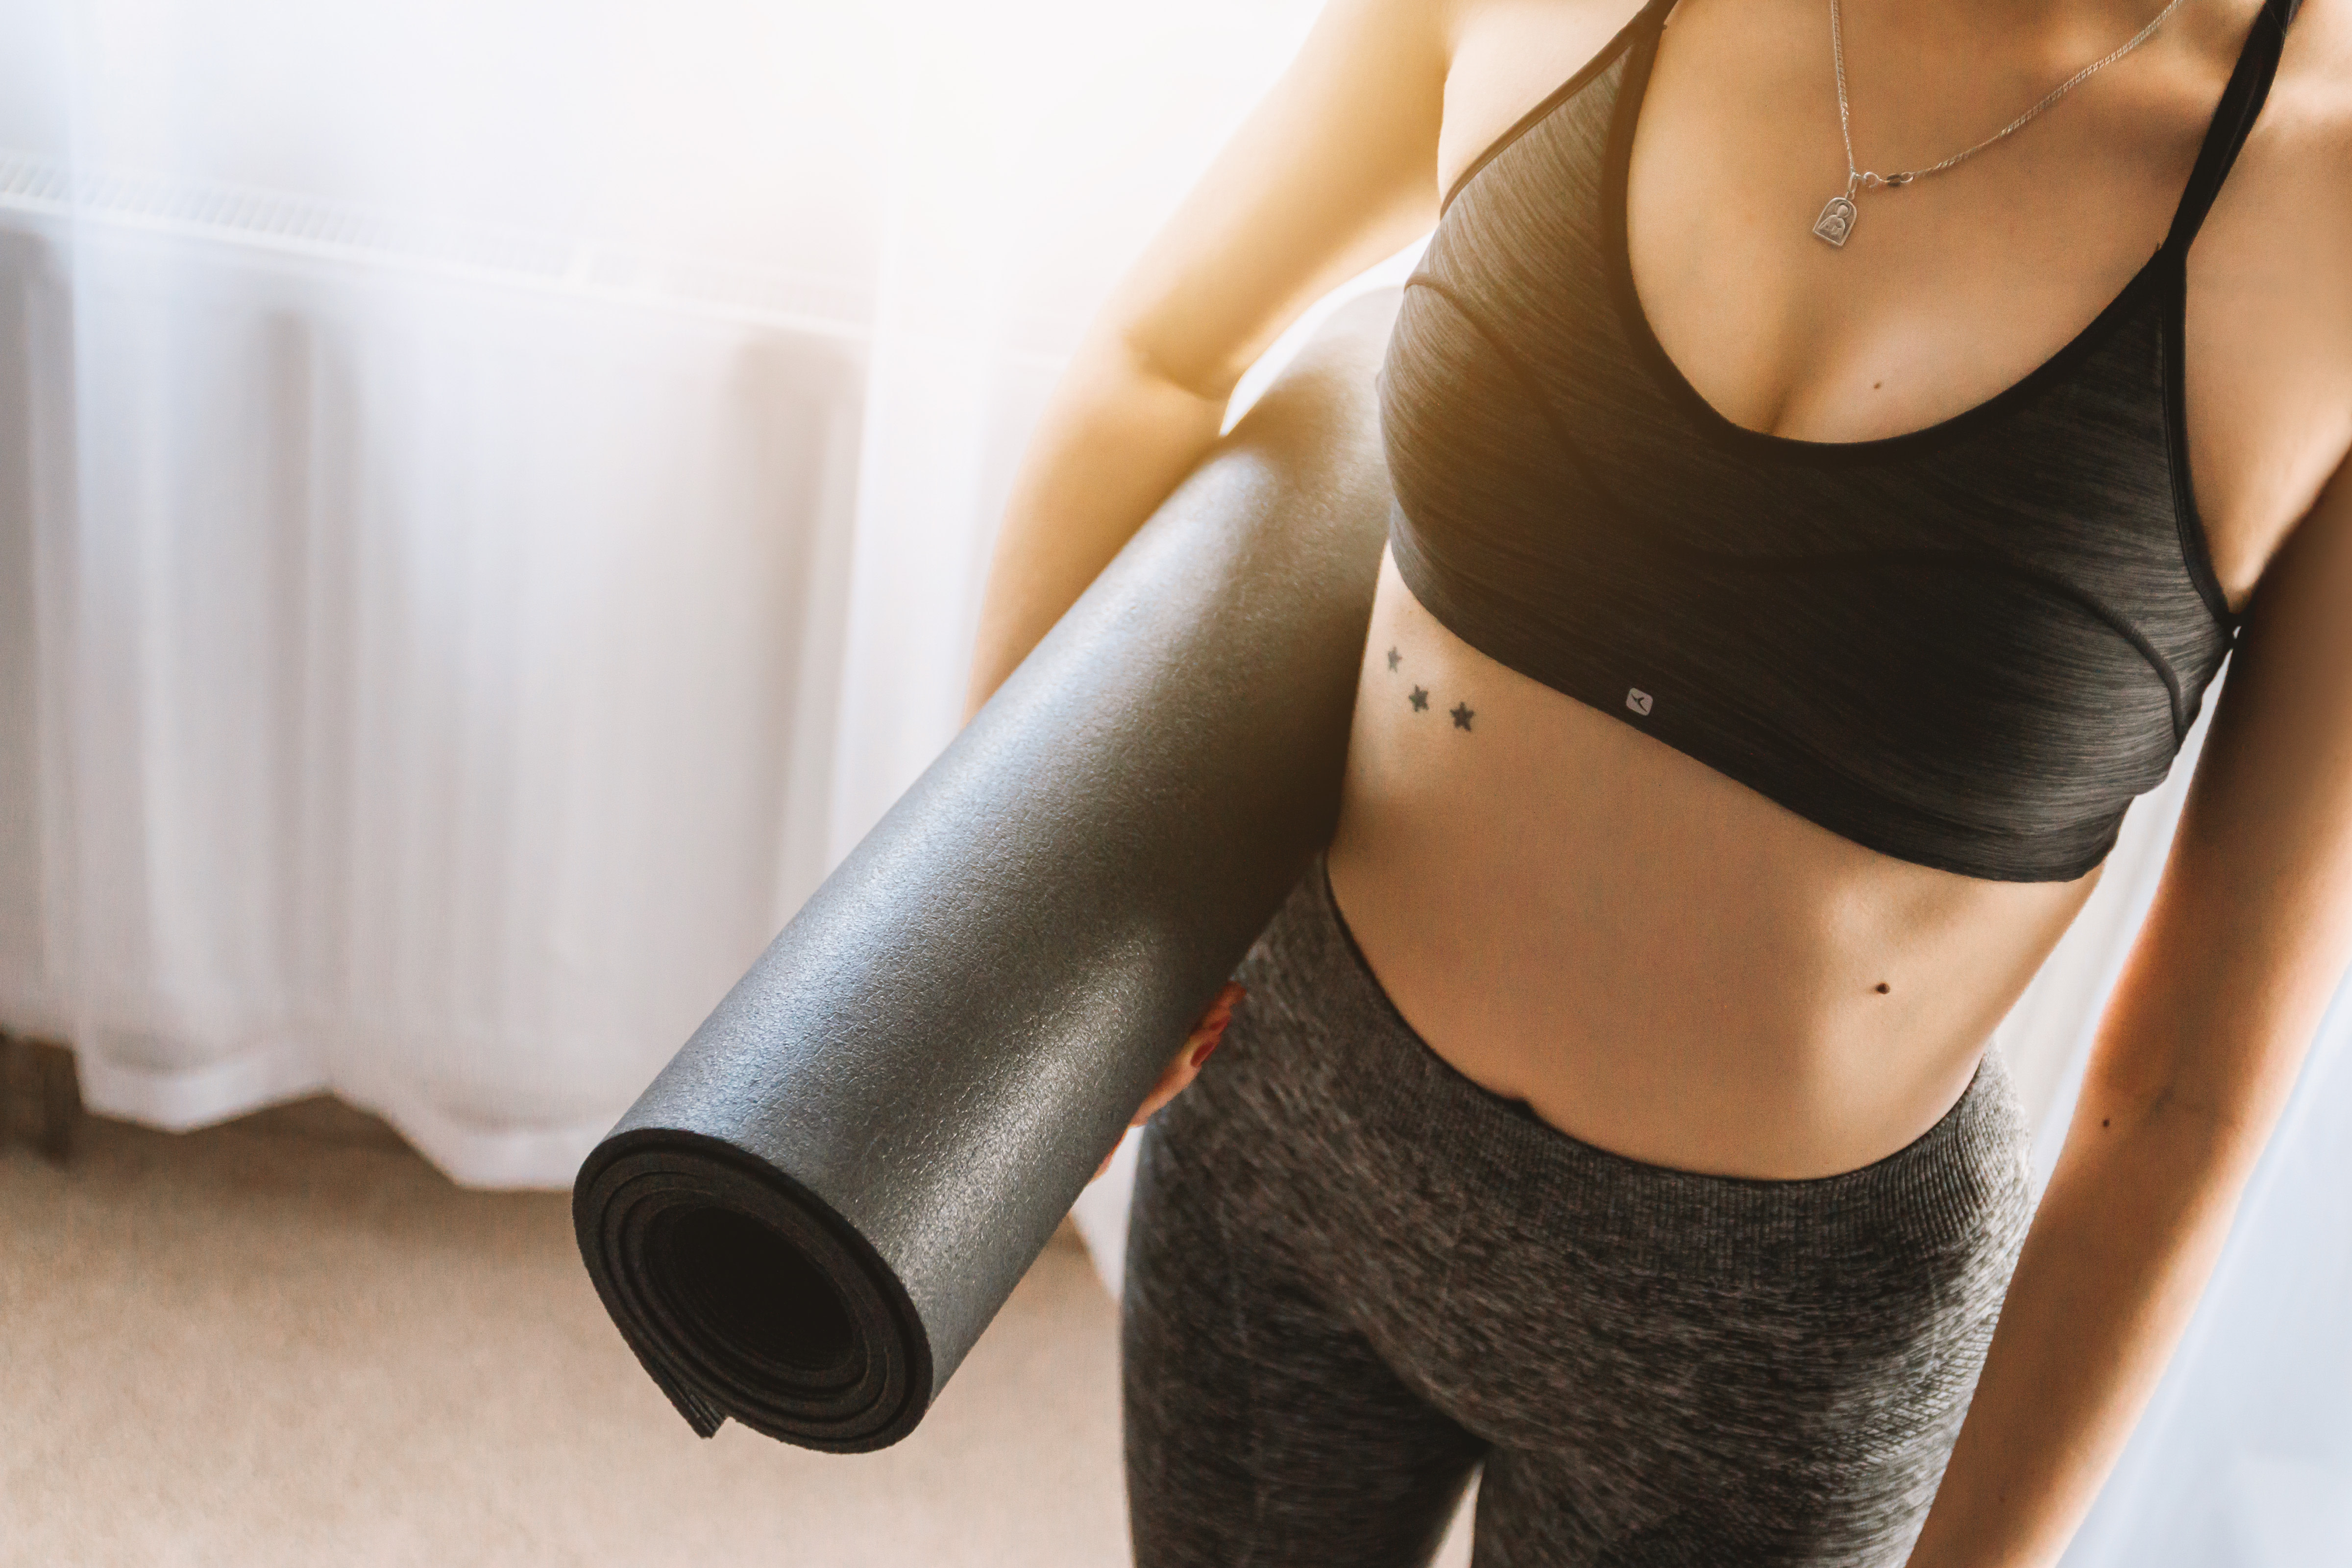 Don't have workout equipment at home? Try these household items instead.